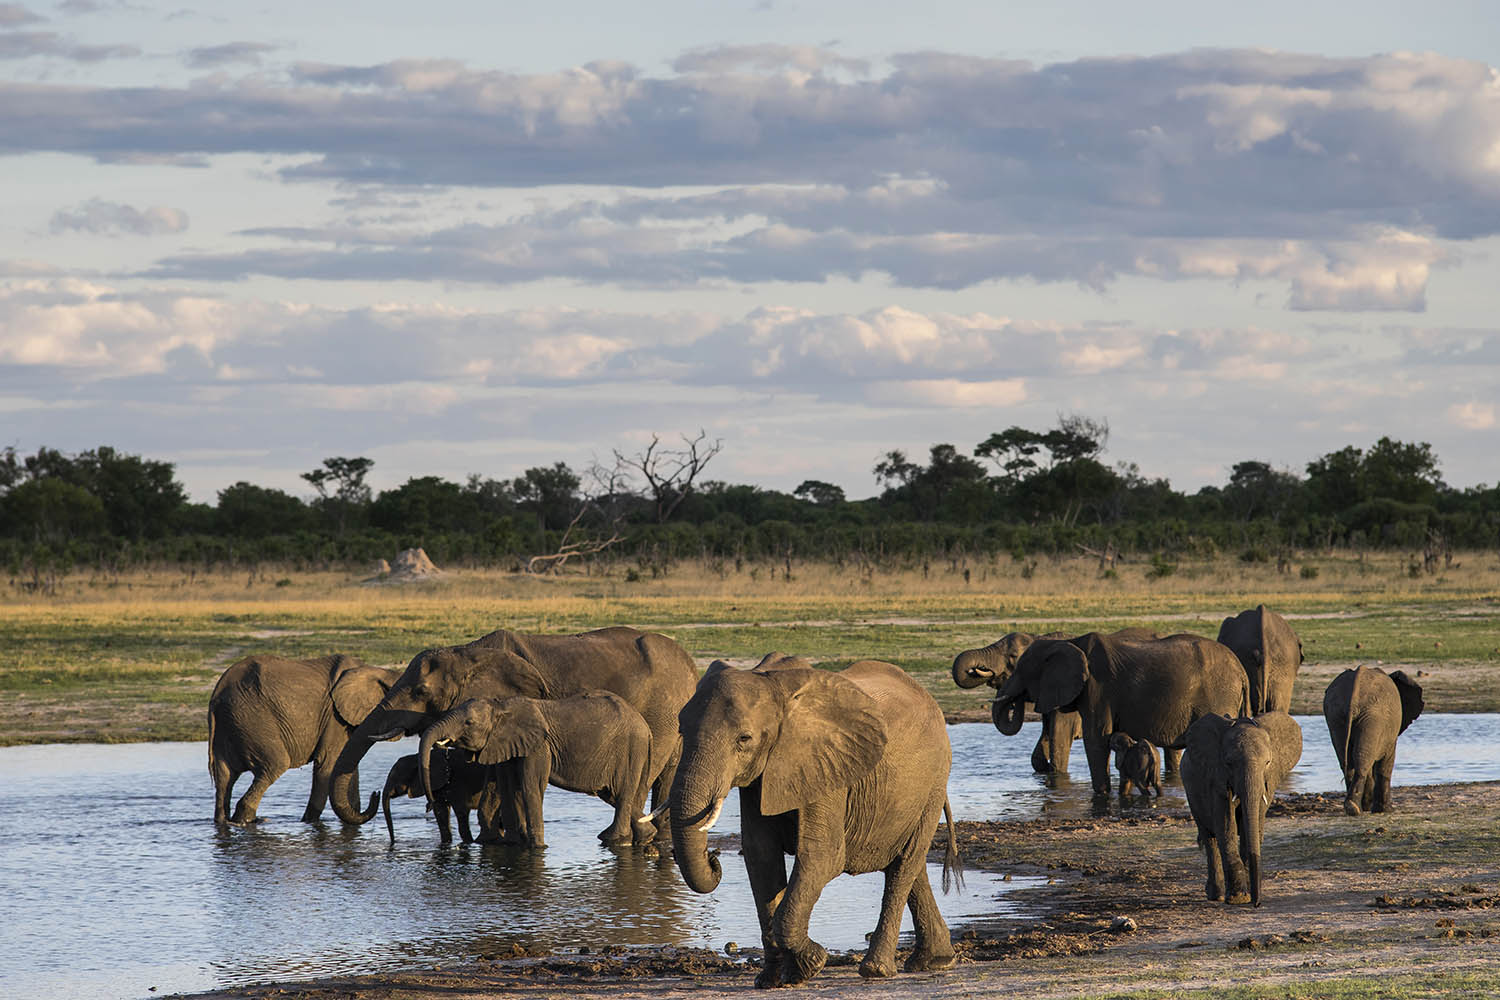 linkwasha camp hwange-national-park-zimbabwe-lodges-wildlife-elephants